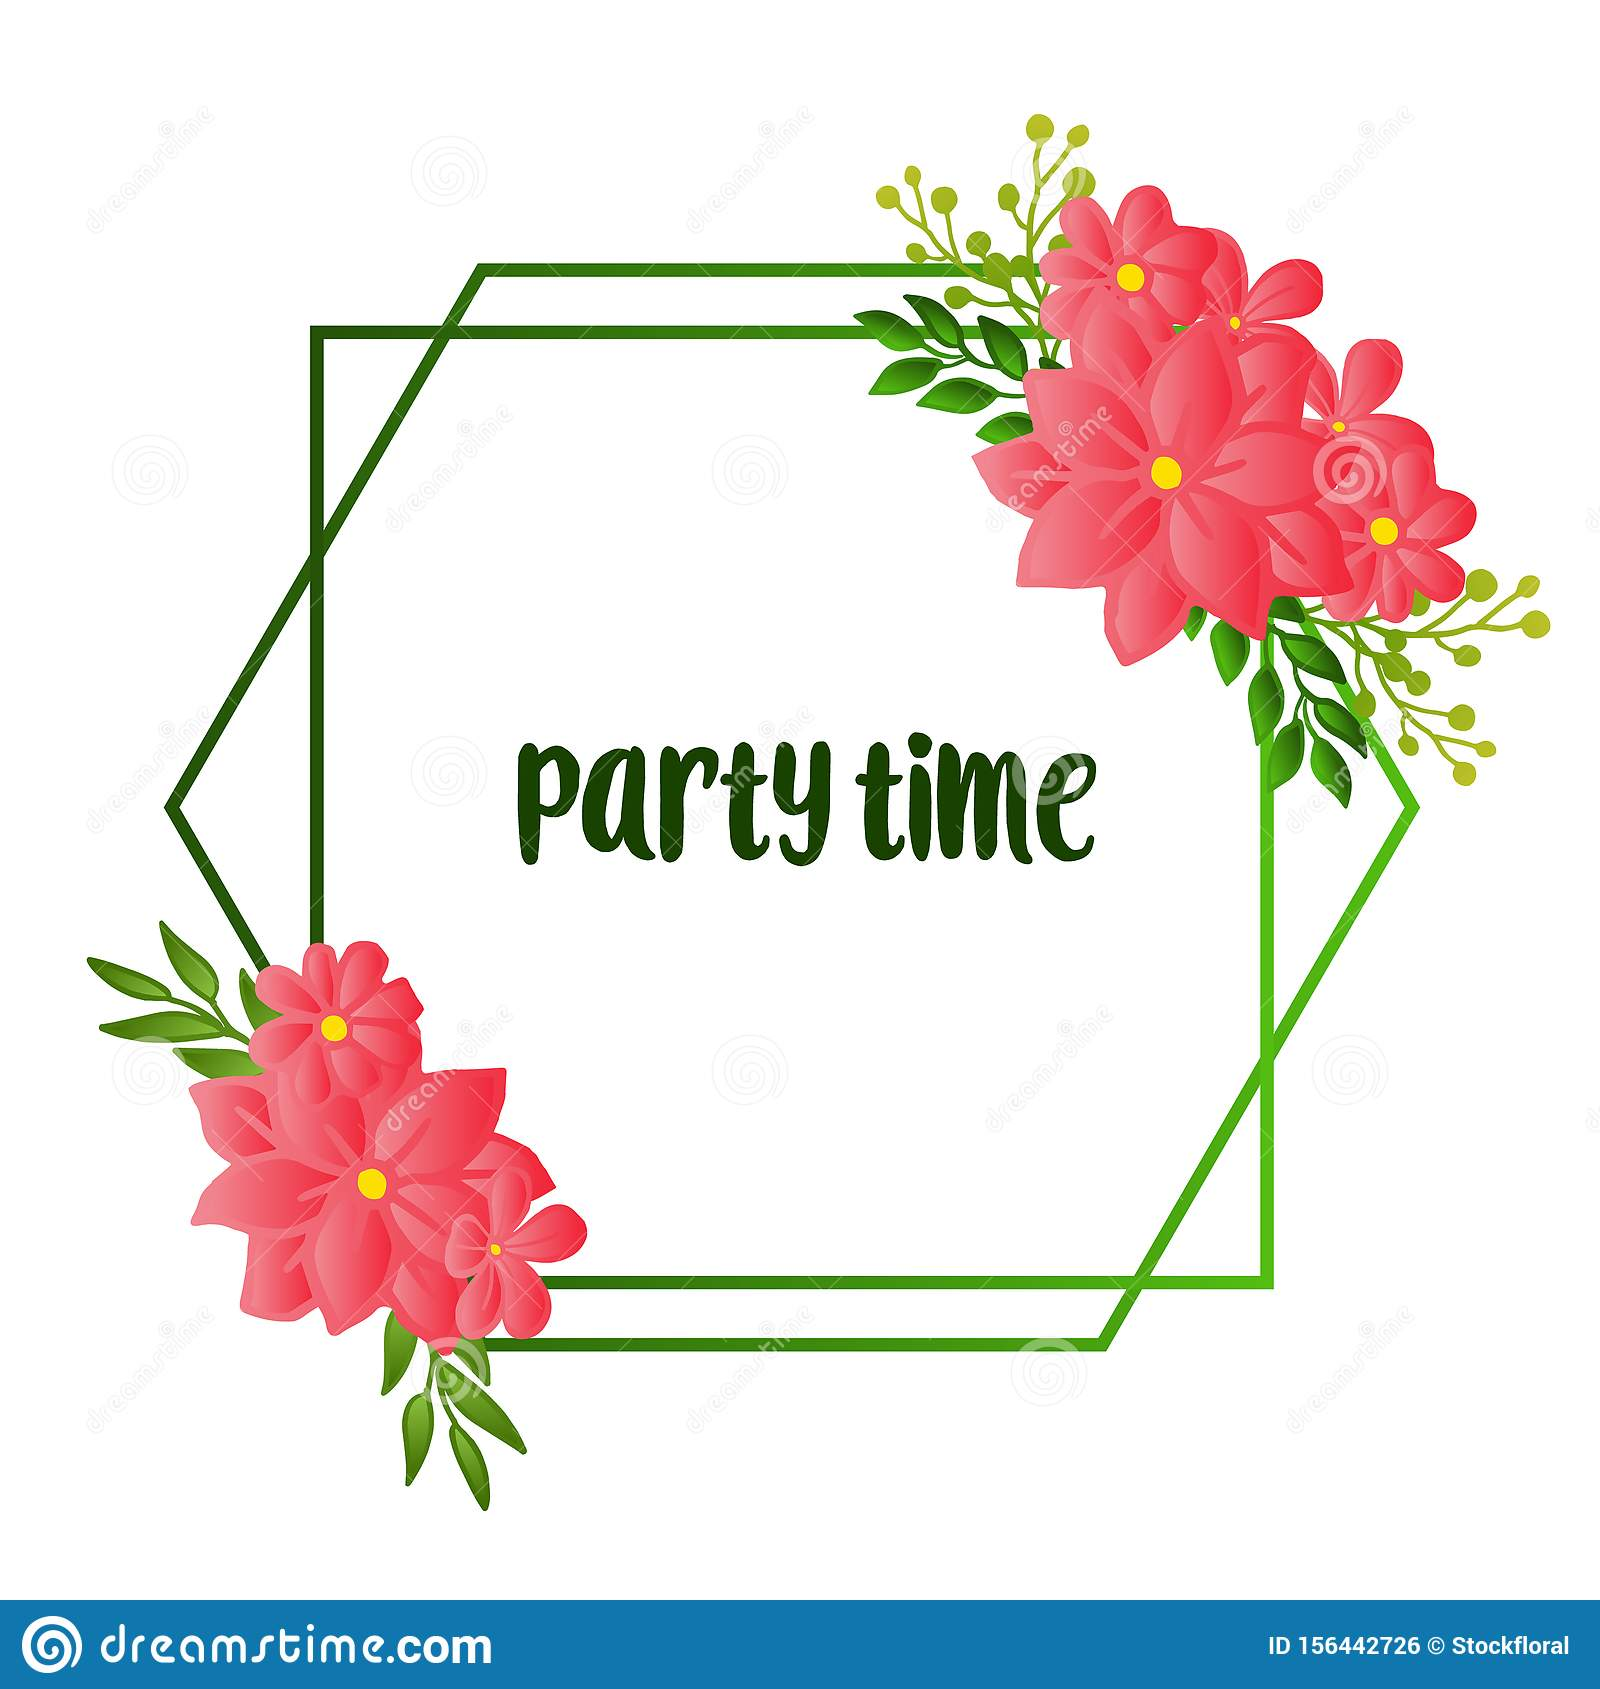 Design beautiful card of party time, line for artwork of green leafy flower frame. Vector